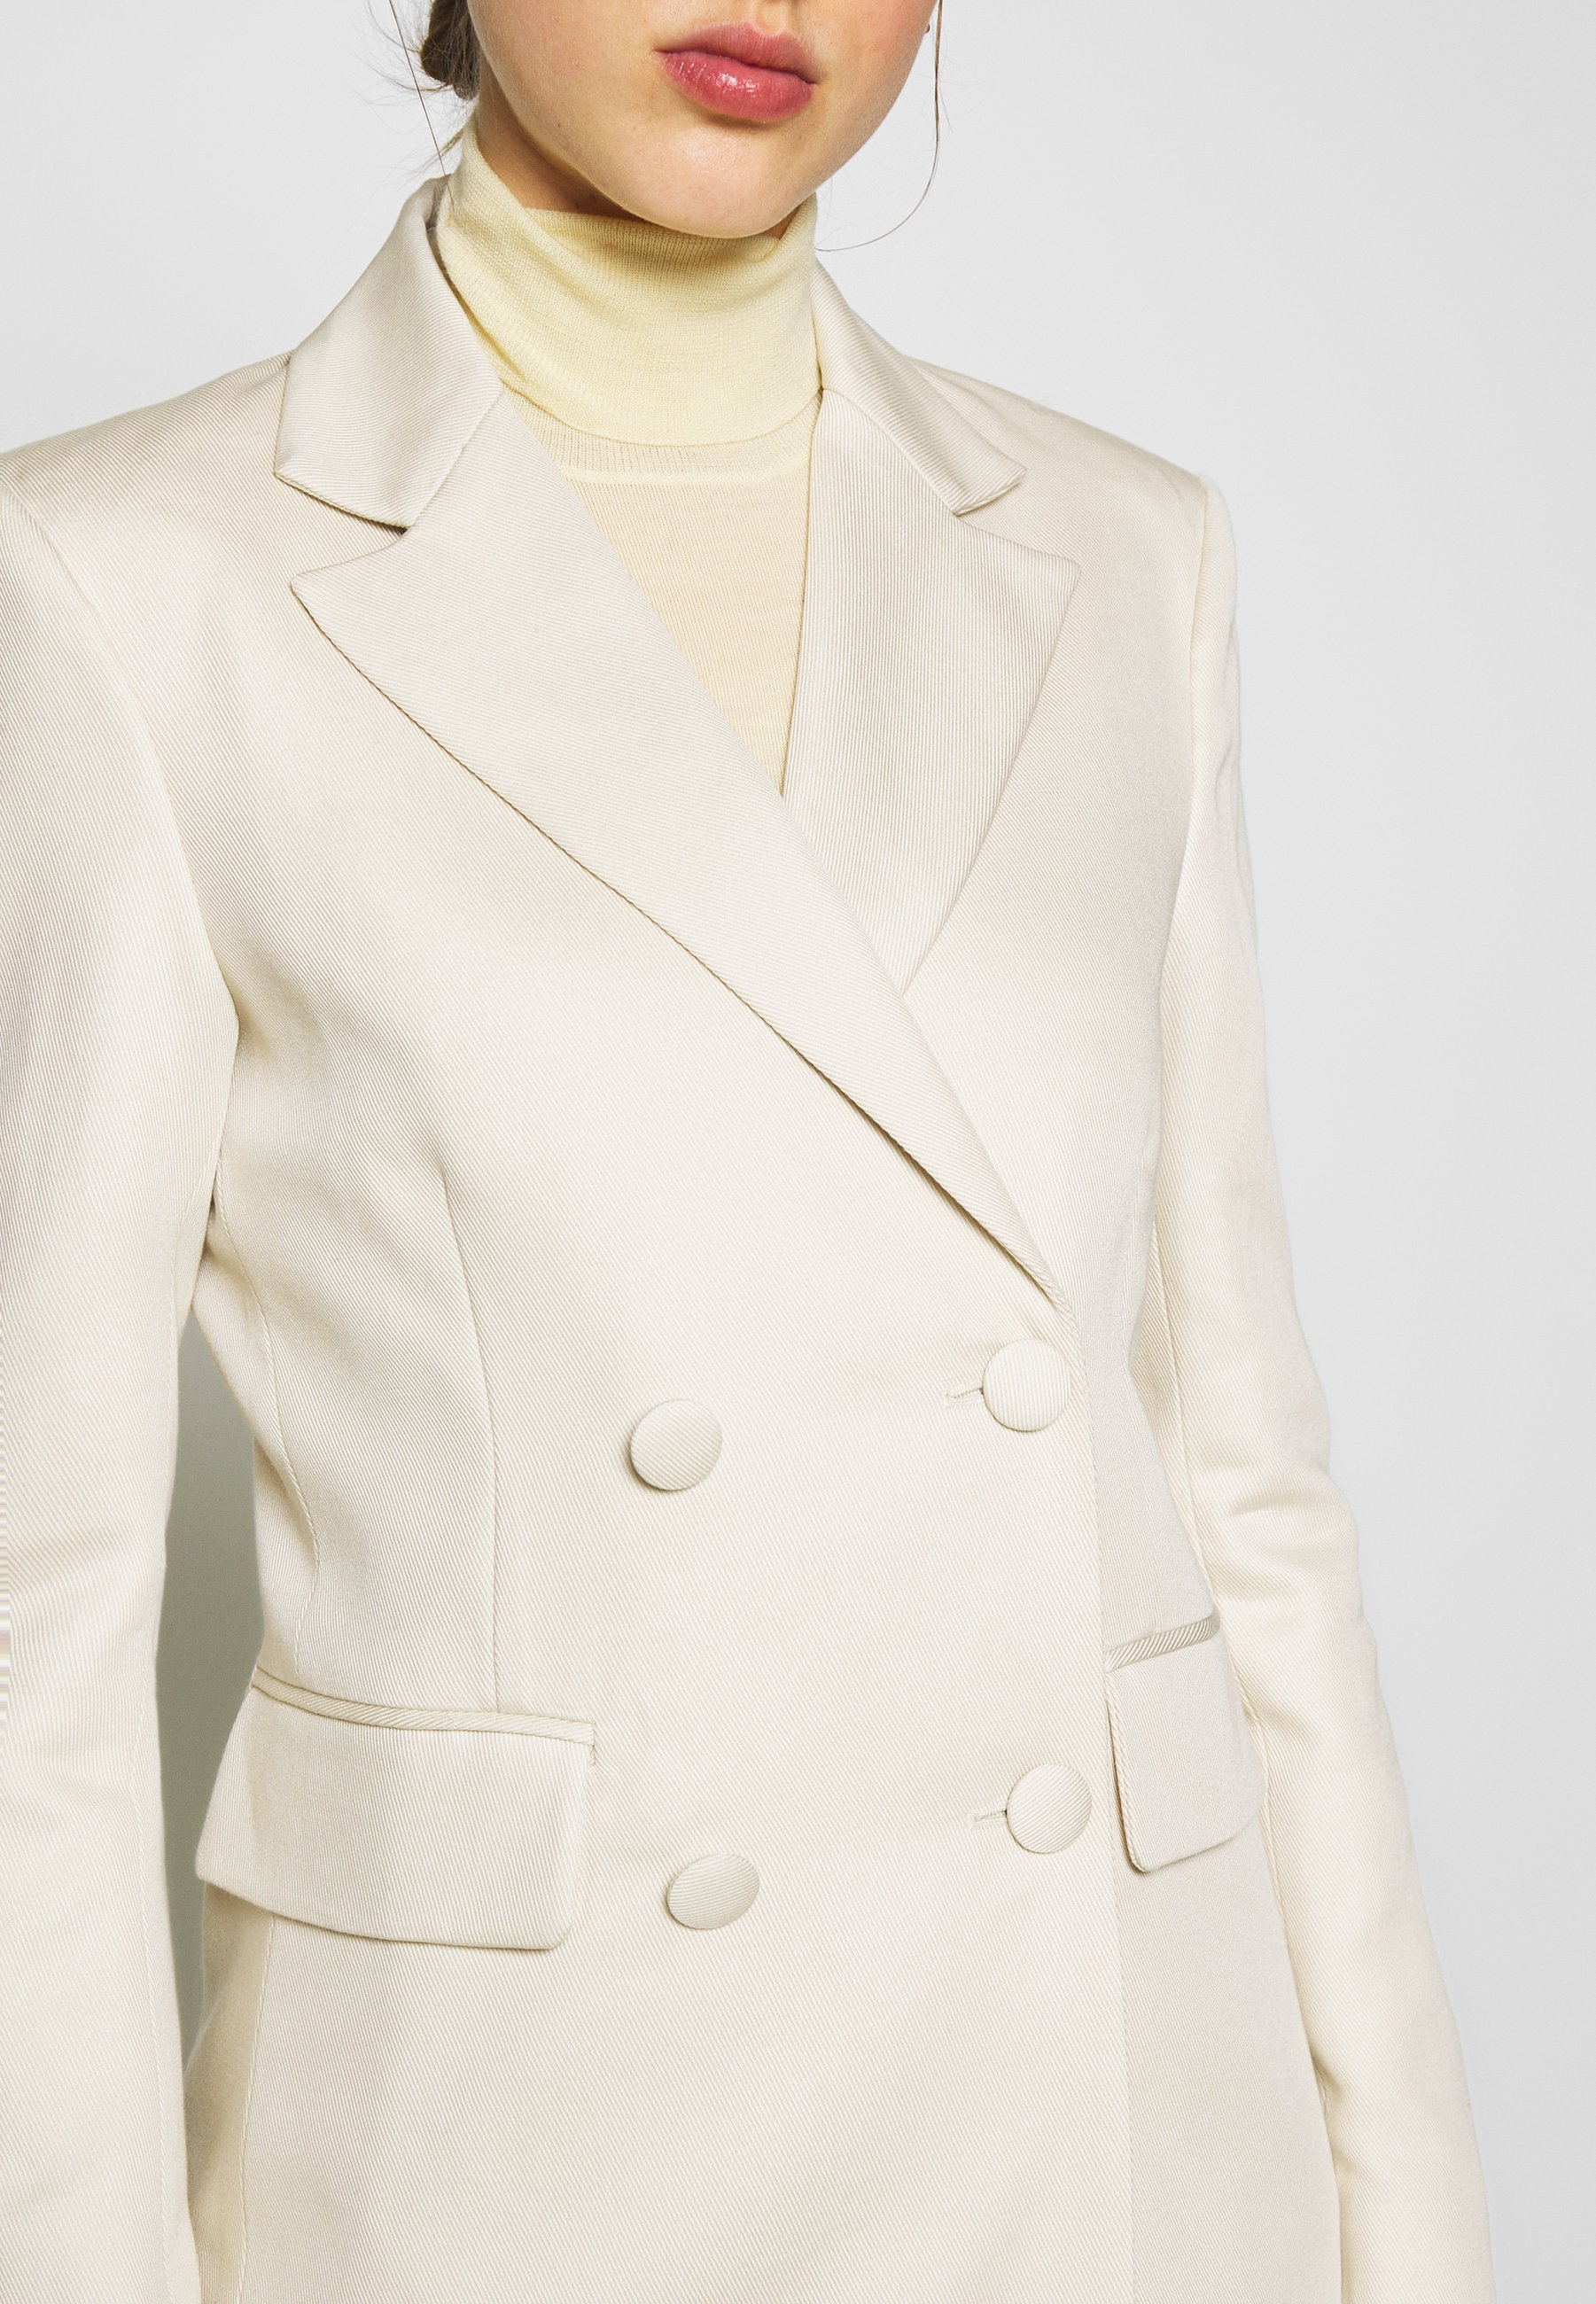 New Lower Prices Women's Clothing 2nd Day ANNIE THINKTWICE Short coat broken white E6qcw7PiD